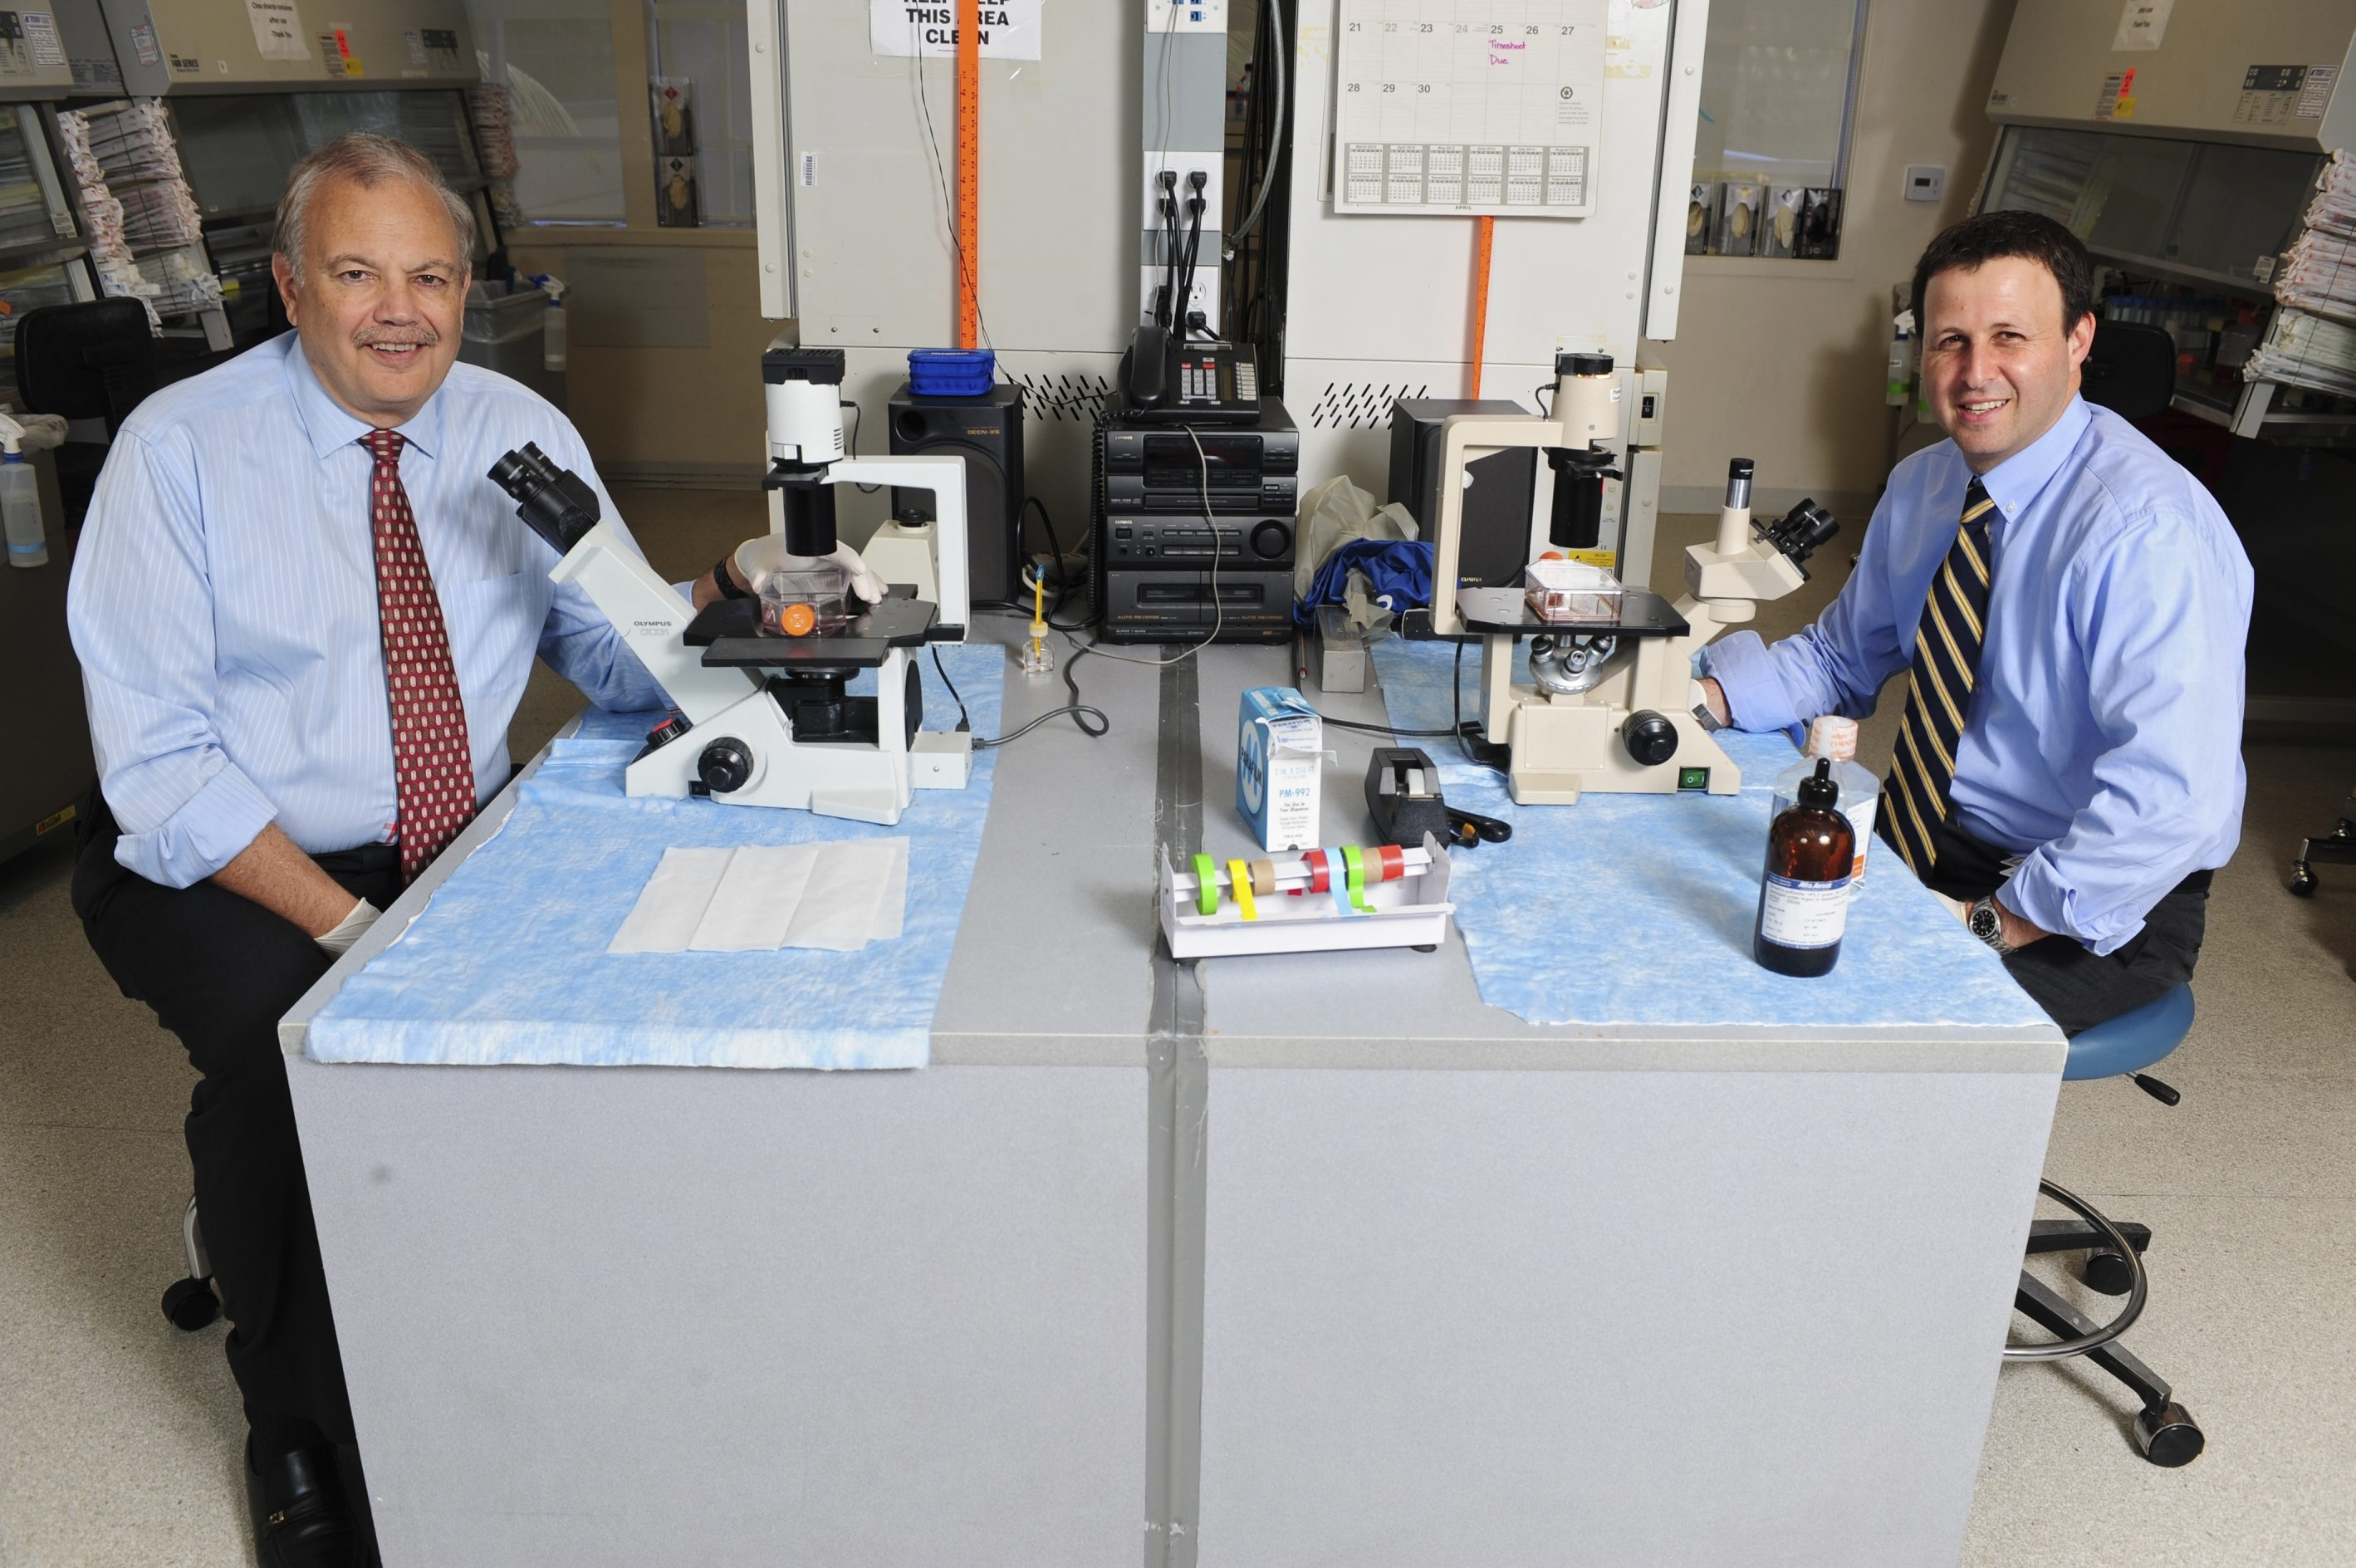 Drs. Dennis Slamon, left, and Richard Finn say that palbociclib, a drug being developed by Pfizer, sharply cut the risk that advanced cancer would worsen among patients in a Phase 2 study.